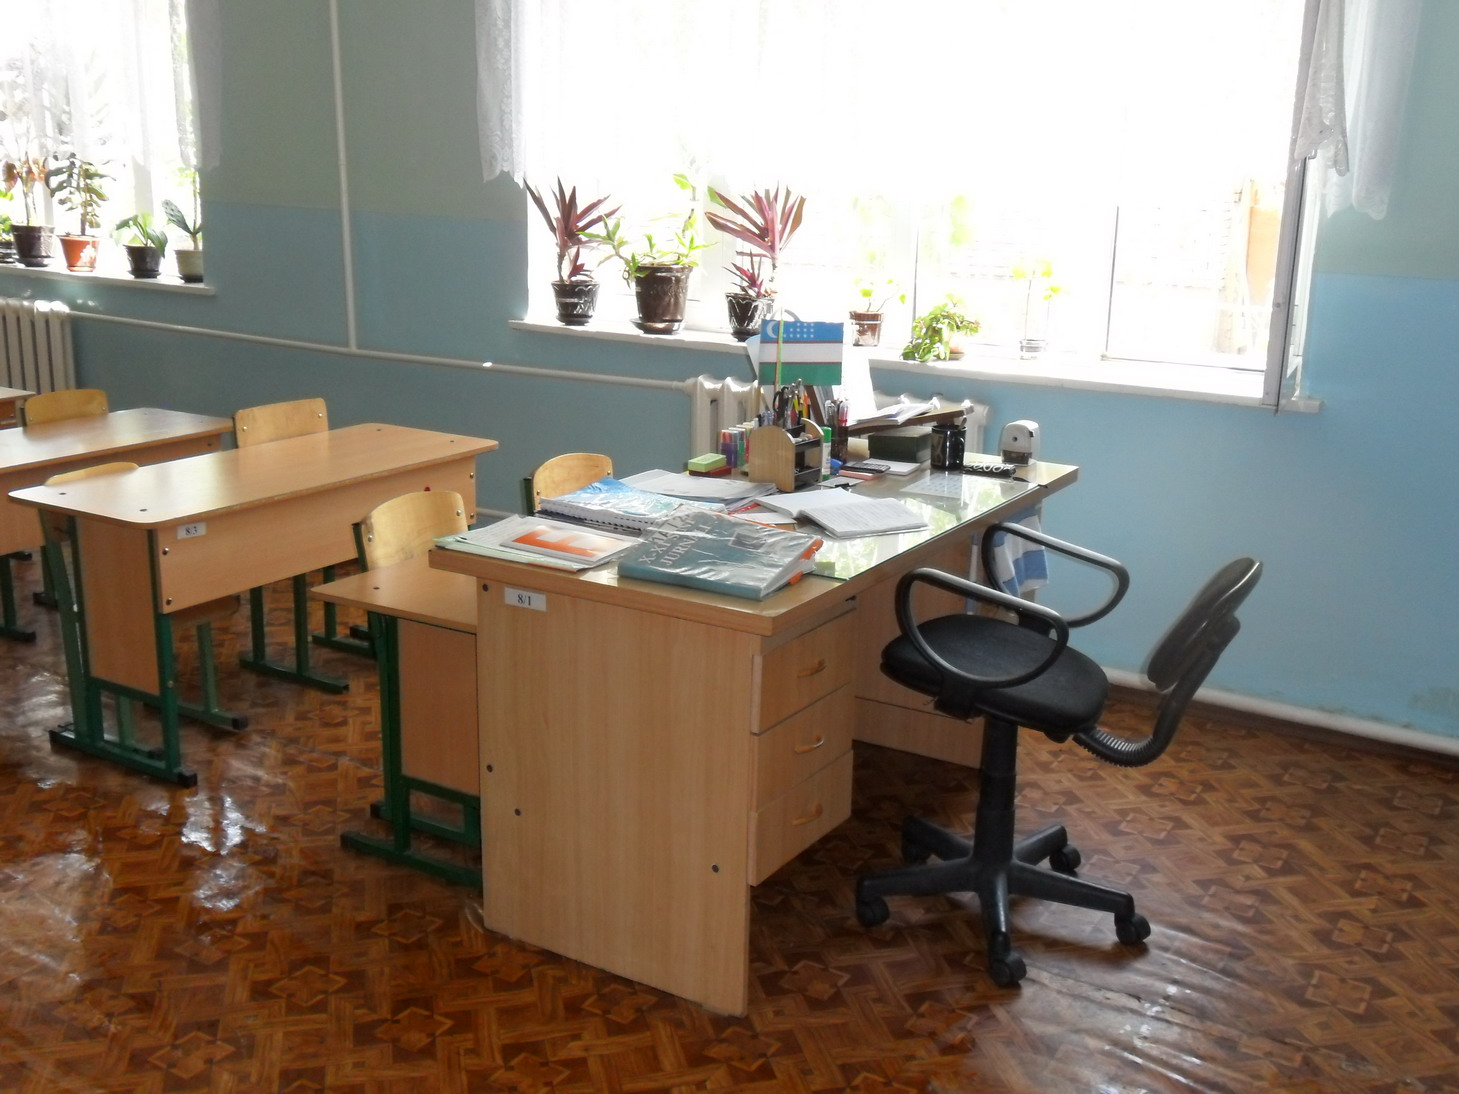 Classroom with indoor plants